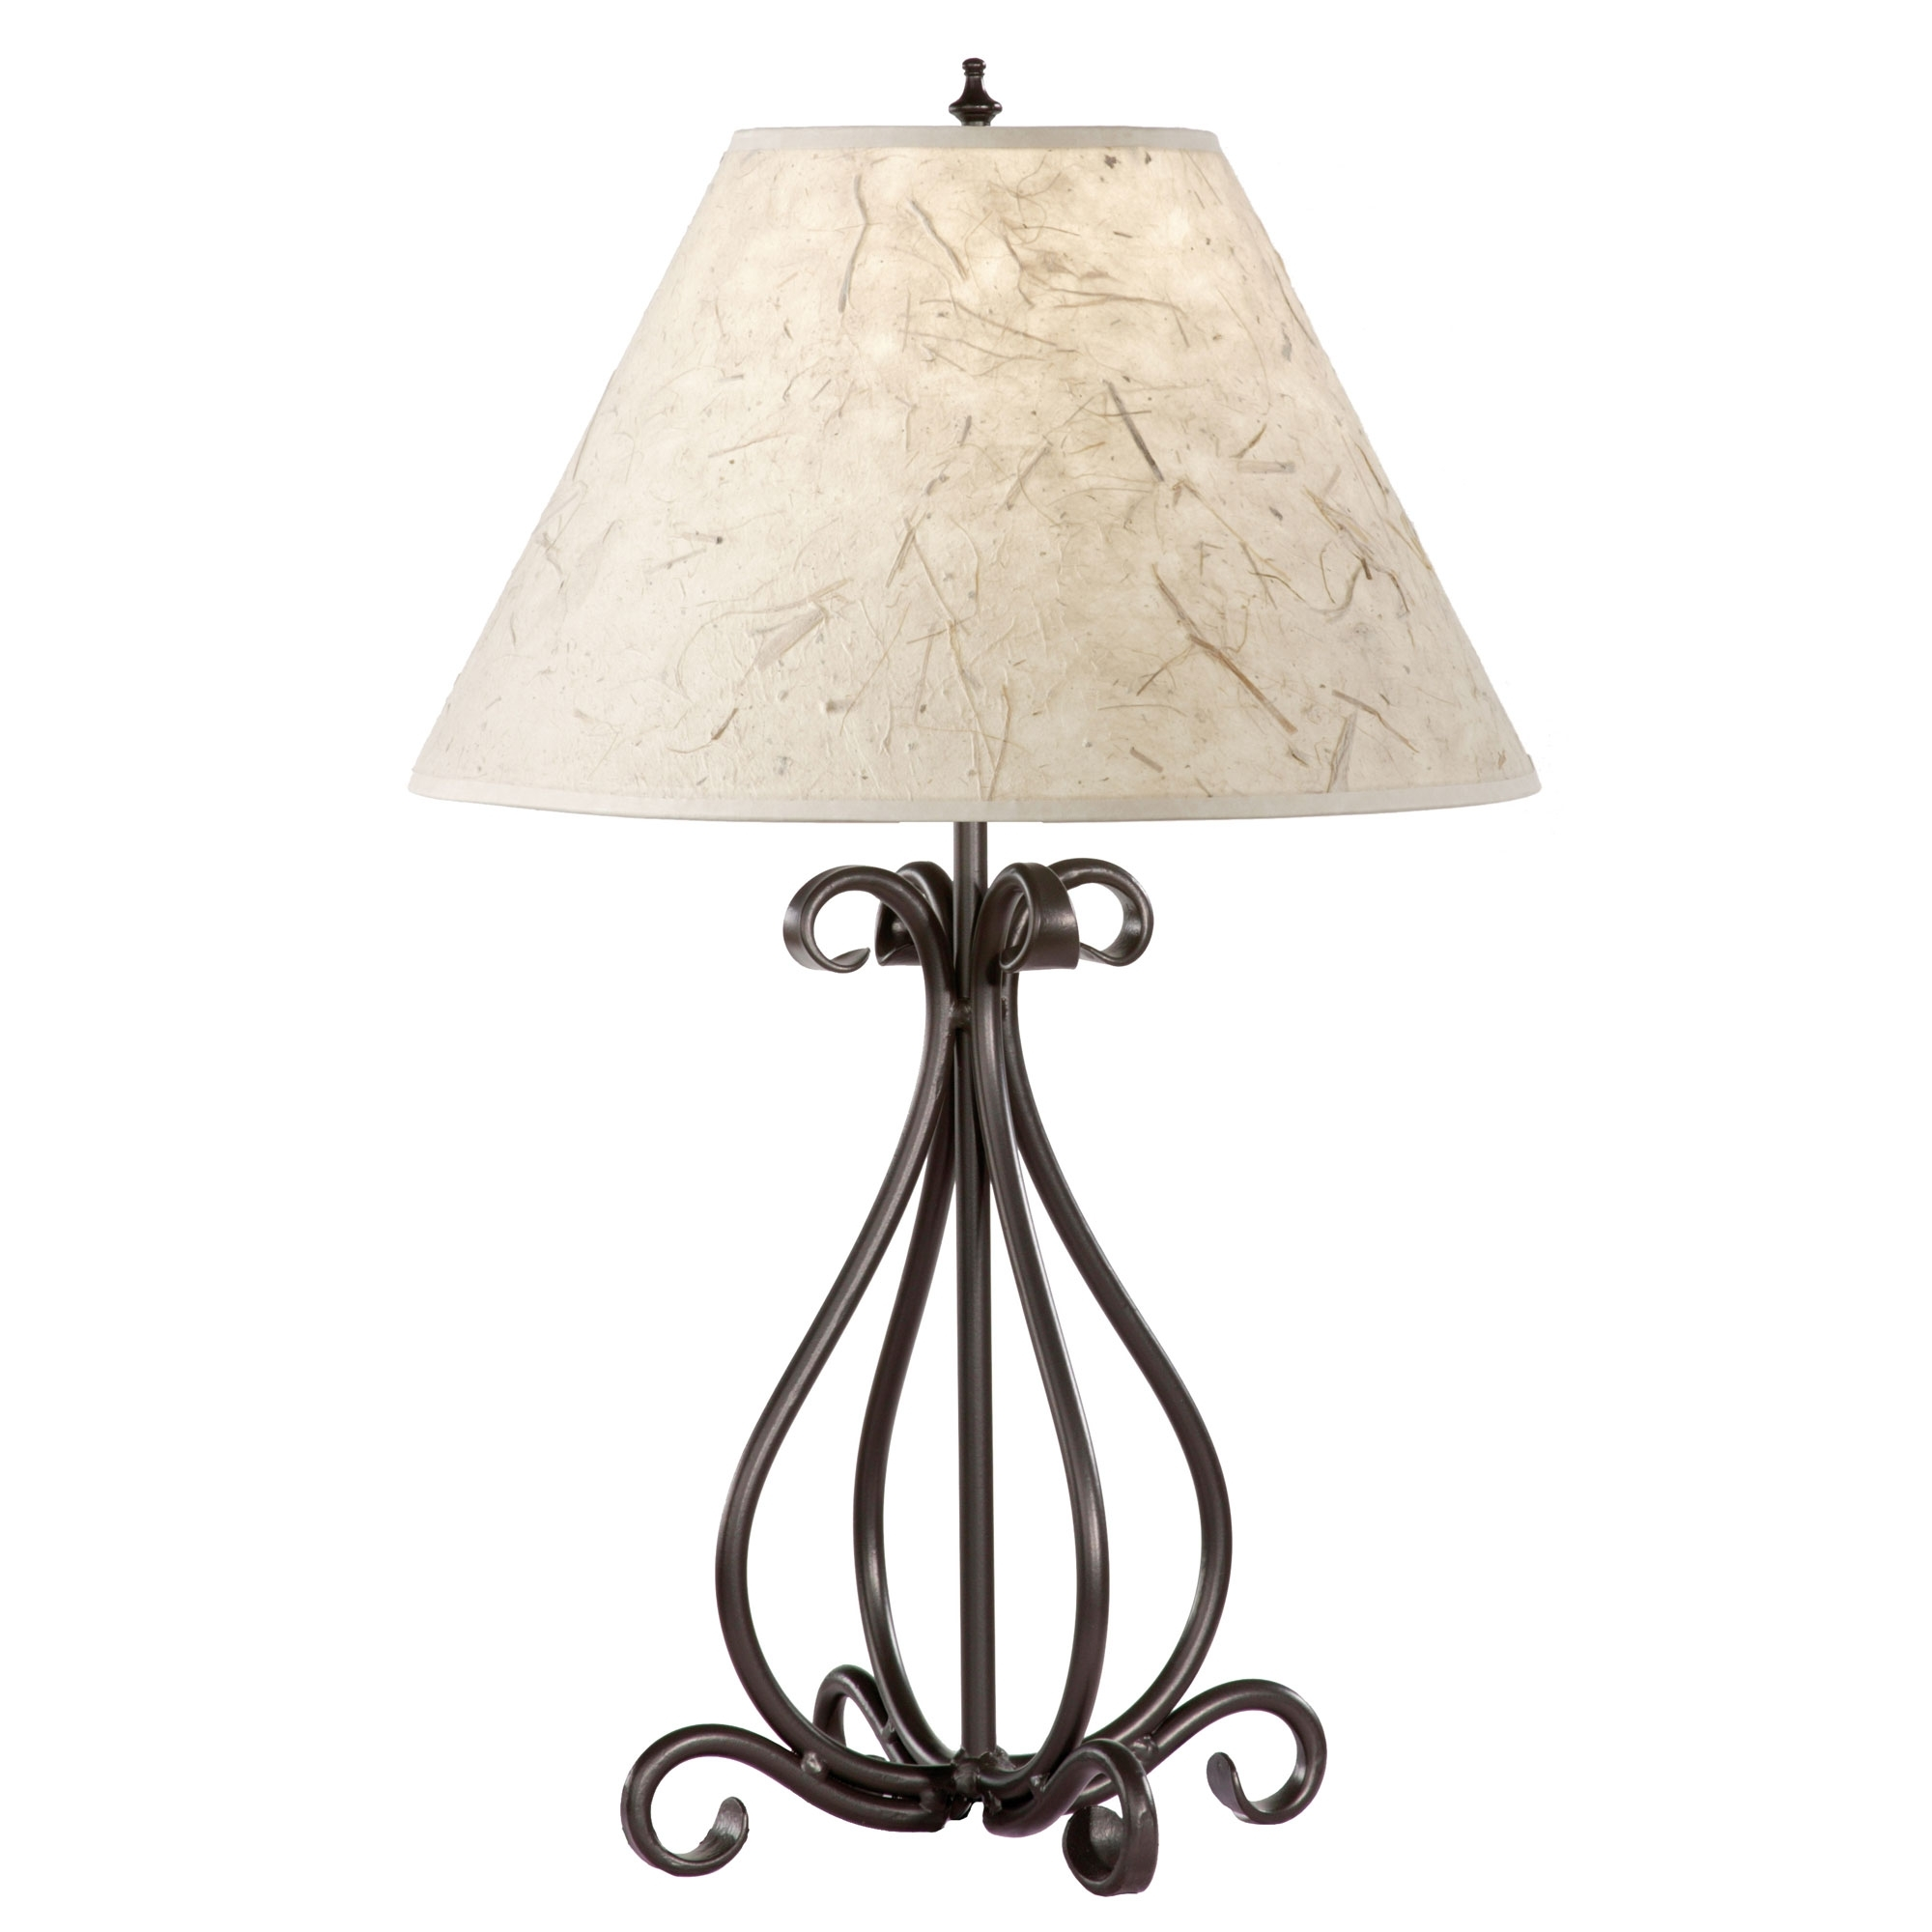 Marvelous Black Wrought Iron Table Lamp 2